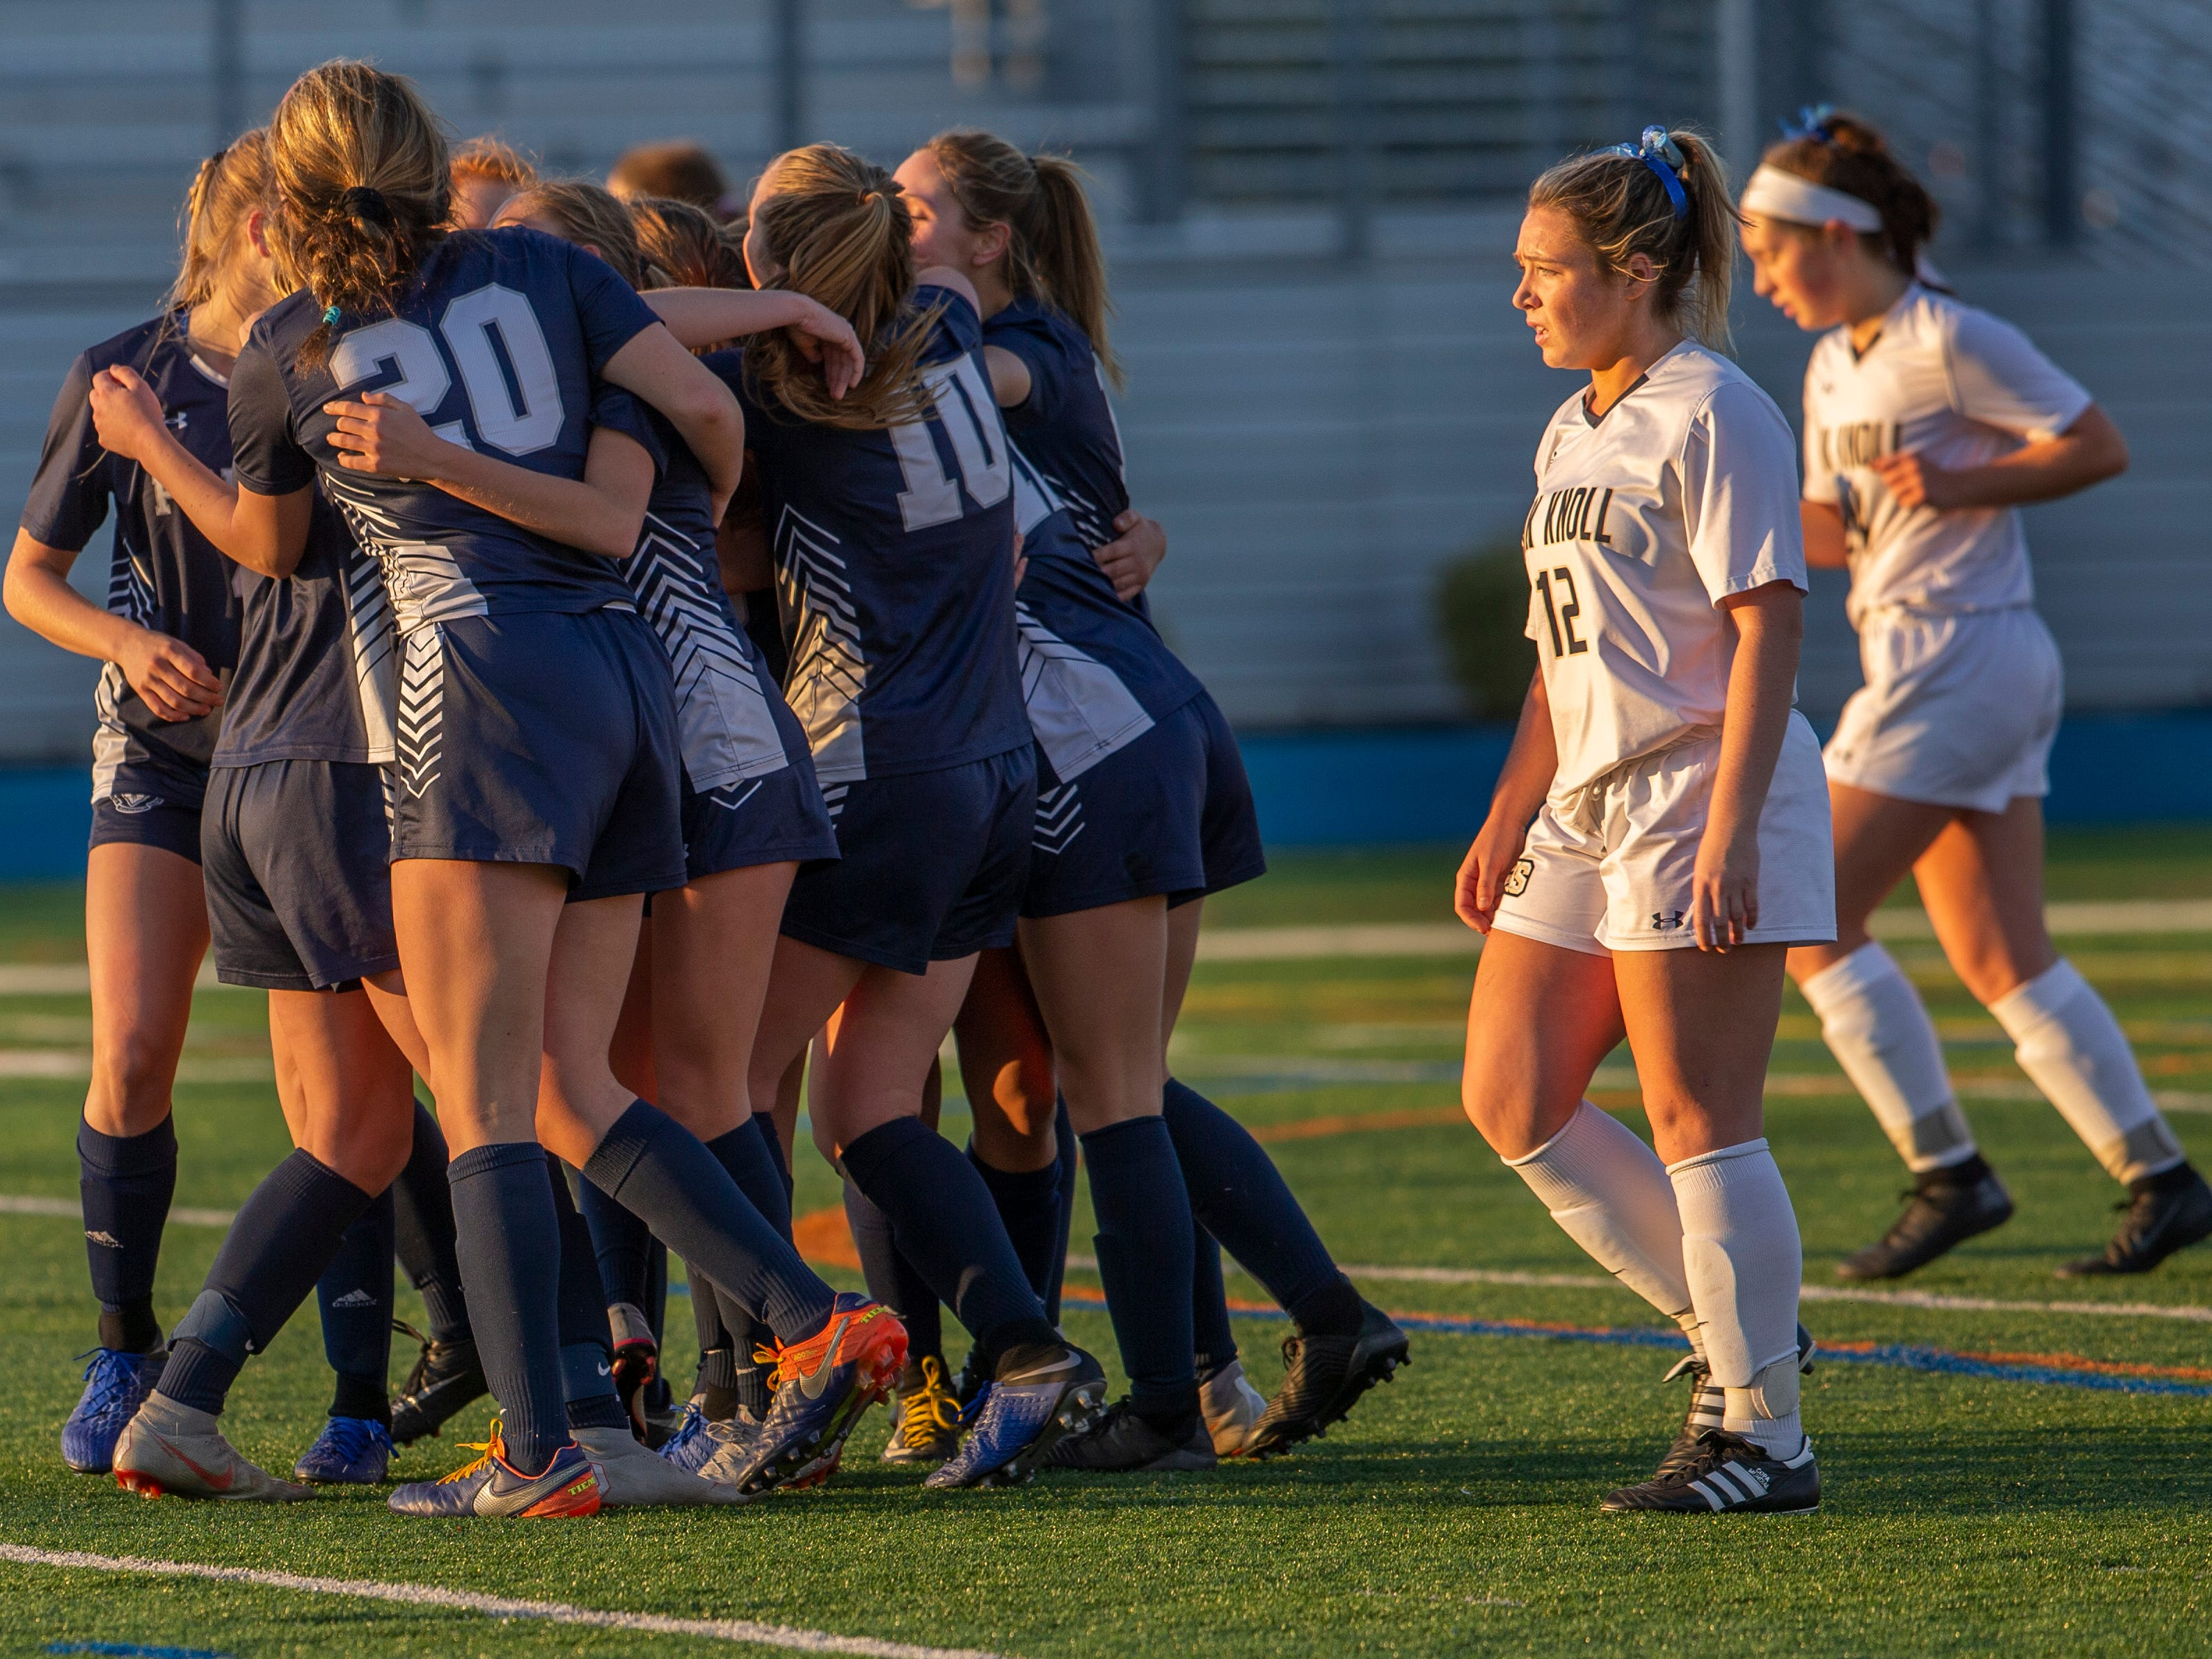 Pingry celebrates after Sophia Cavaliere scored its third goal of the game during the Non-Public A final on Sunday, Nov. 11, 2018 at Kean University.